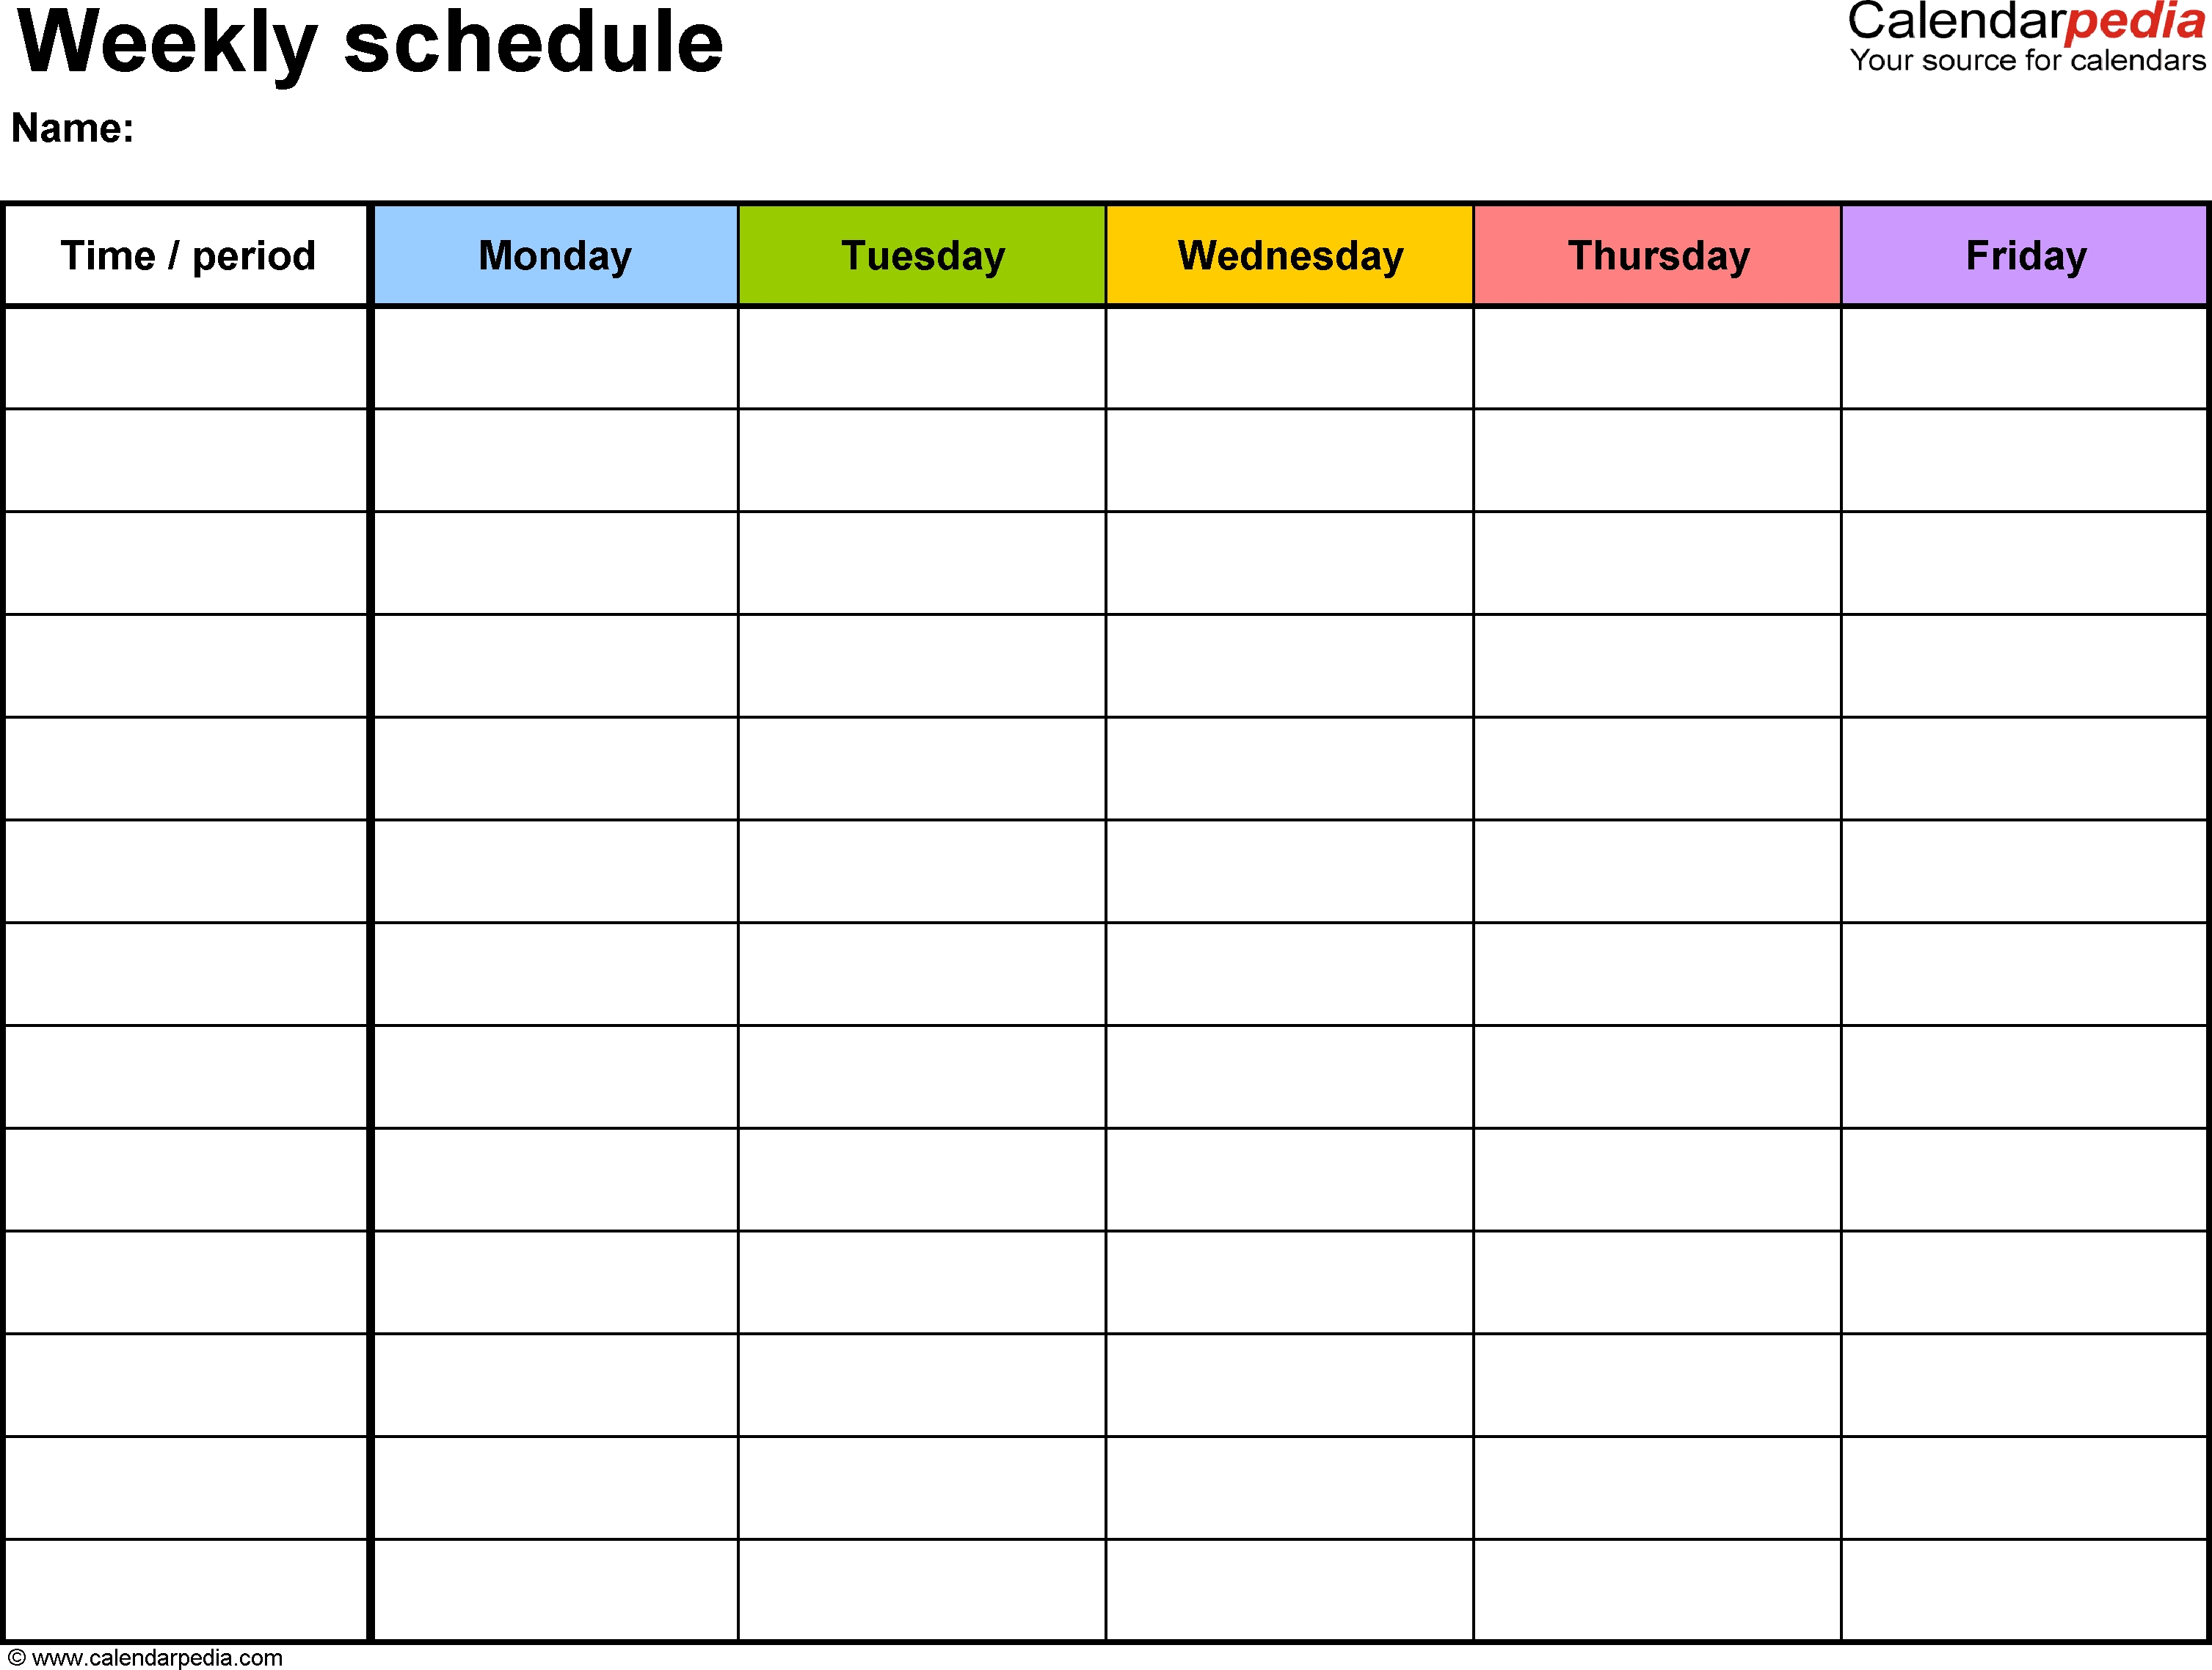 Free Weekly Schedule Templates For Word 18 Templates 89uj